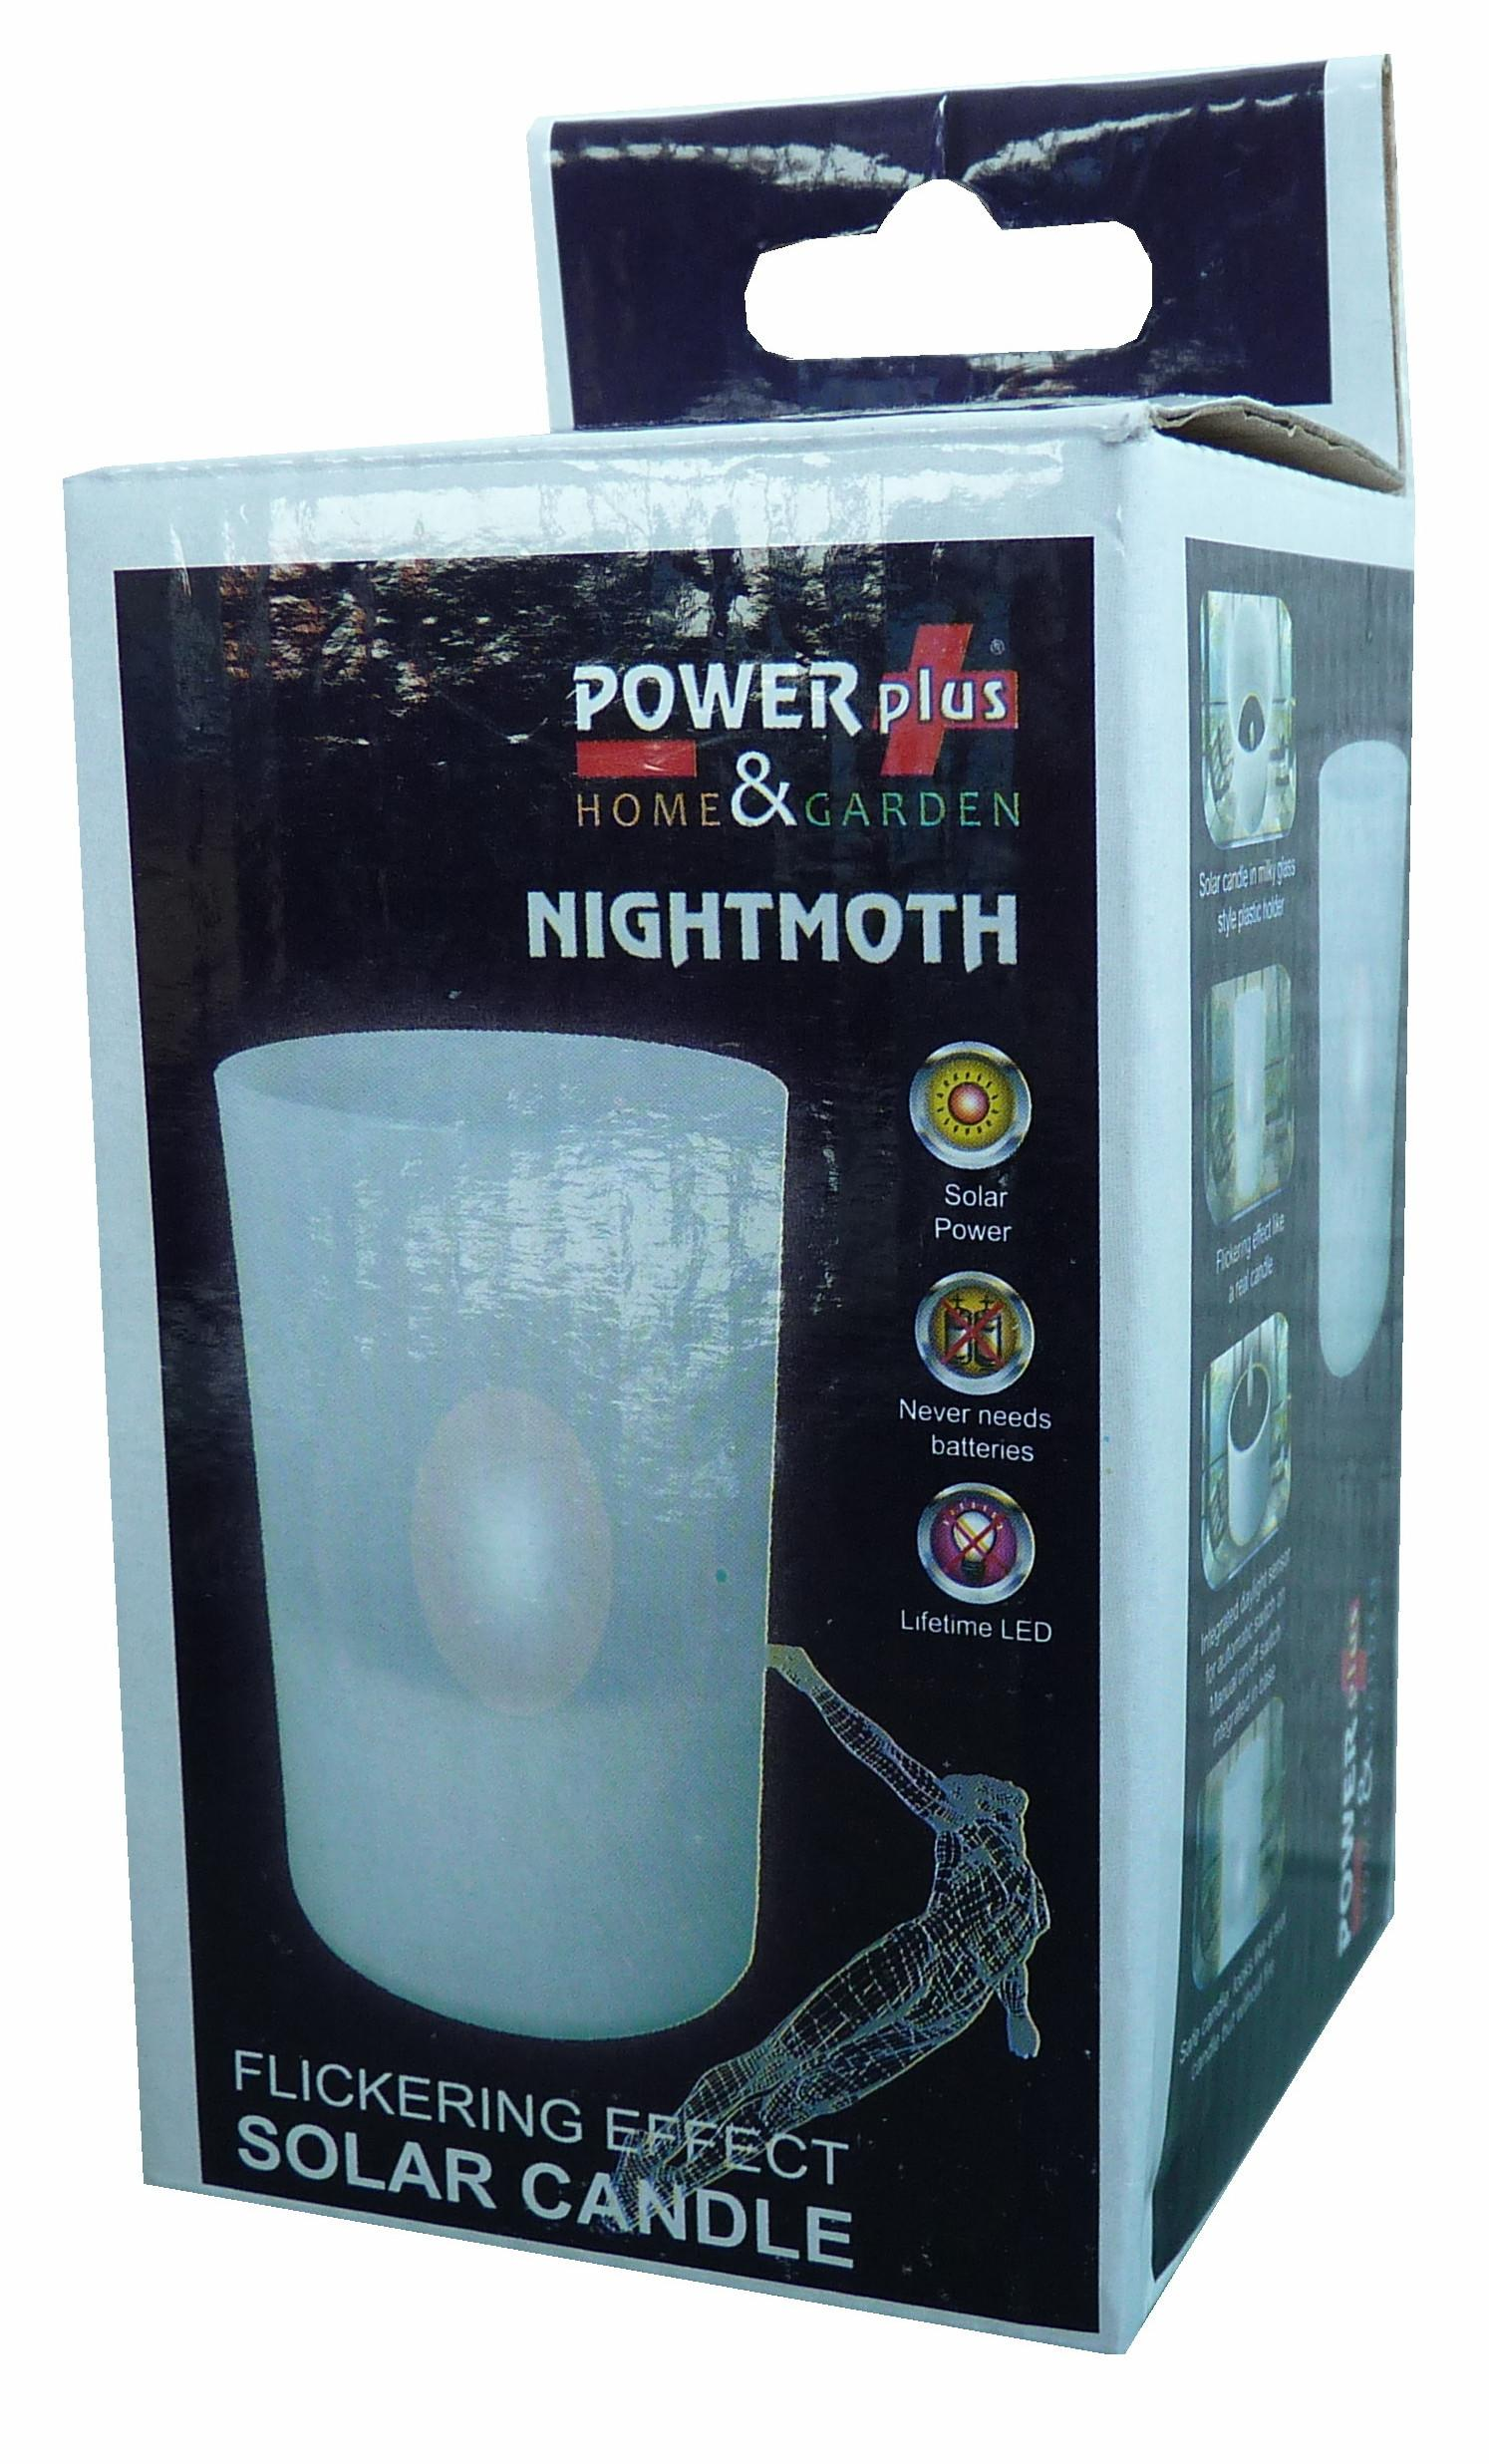 POWERplus Nightmoth Flickering Effect Solar Candle